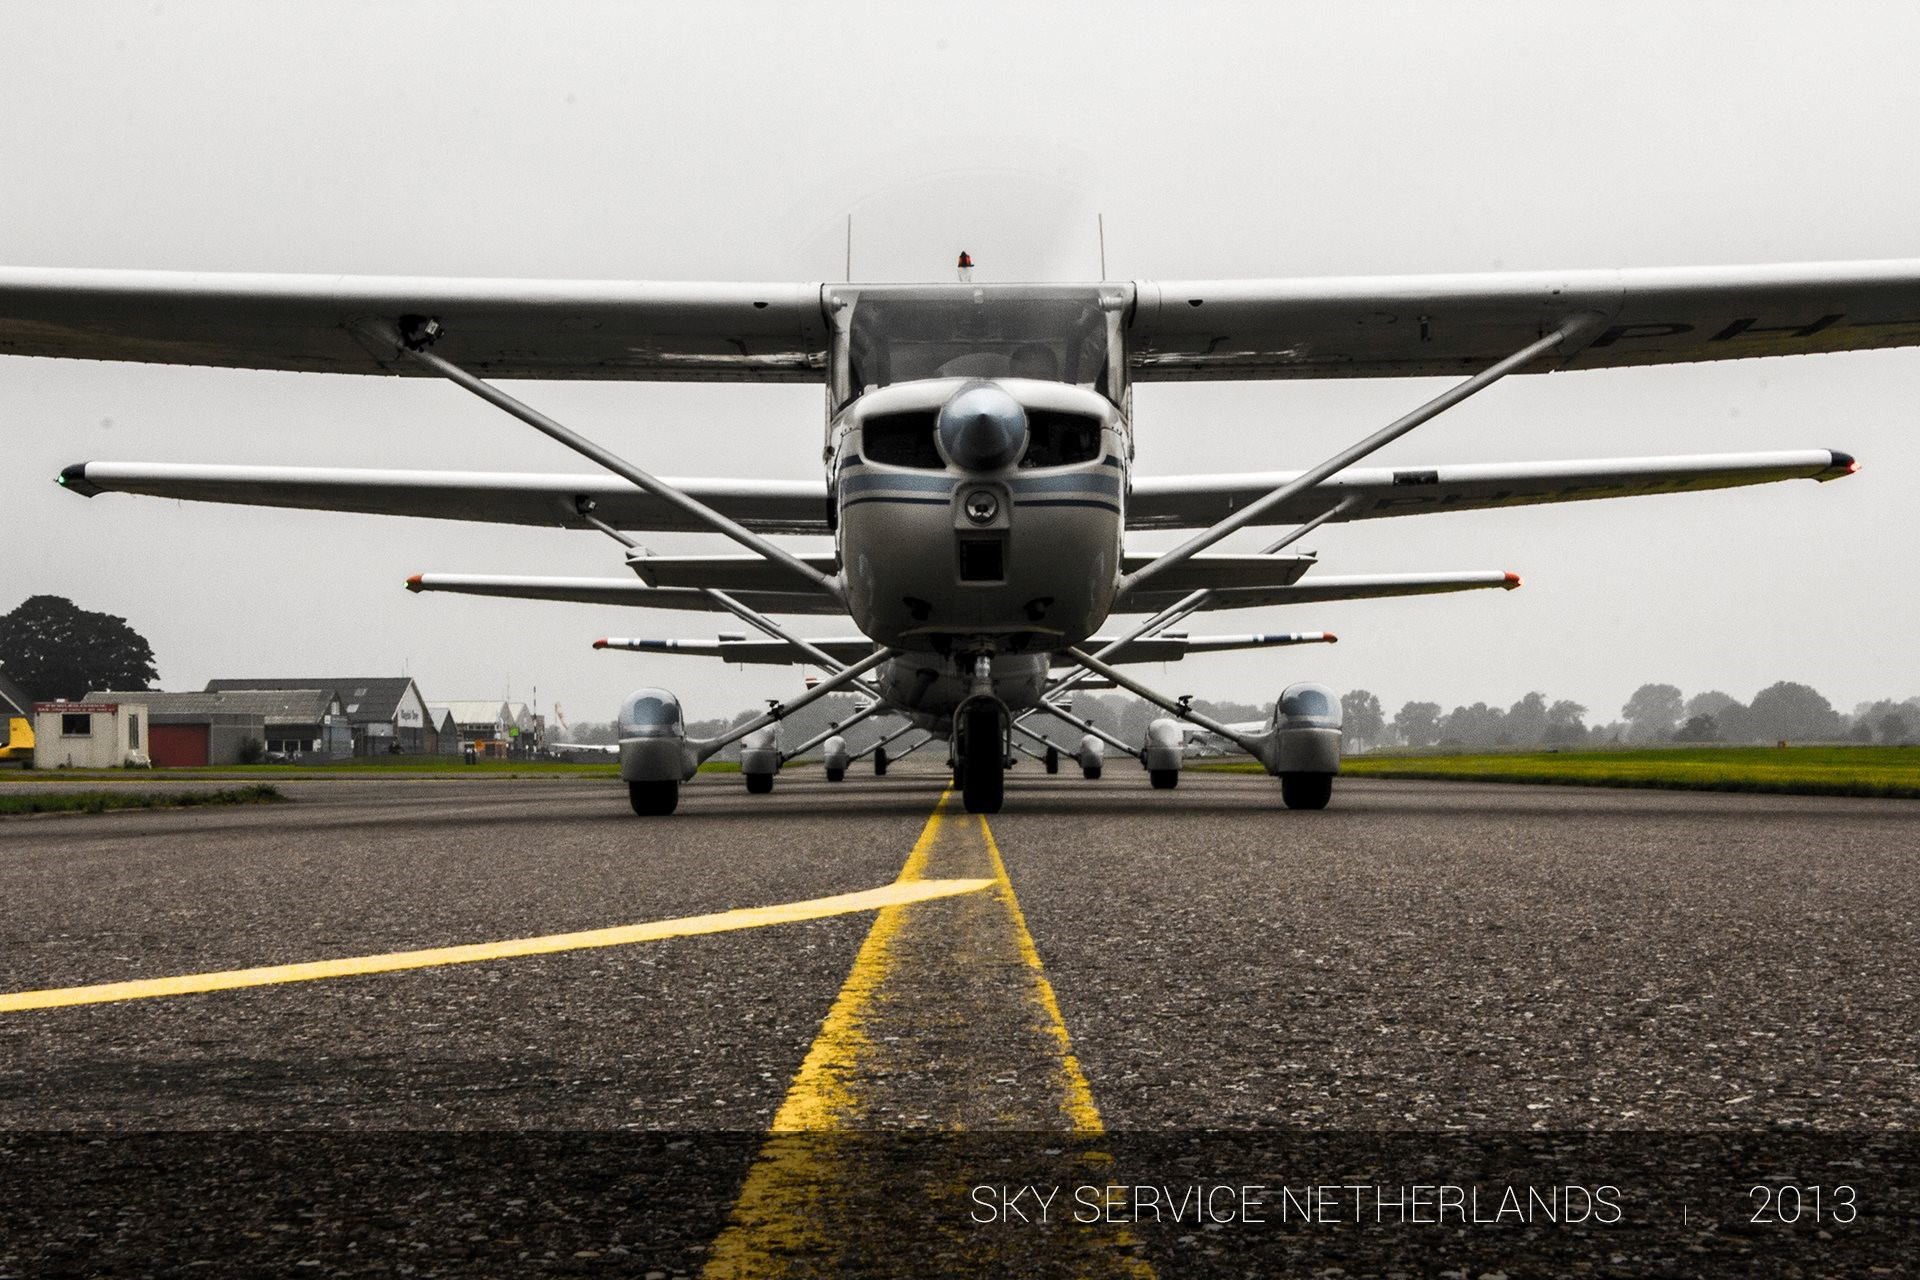 PH-CAN VliegExperience Teuge